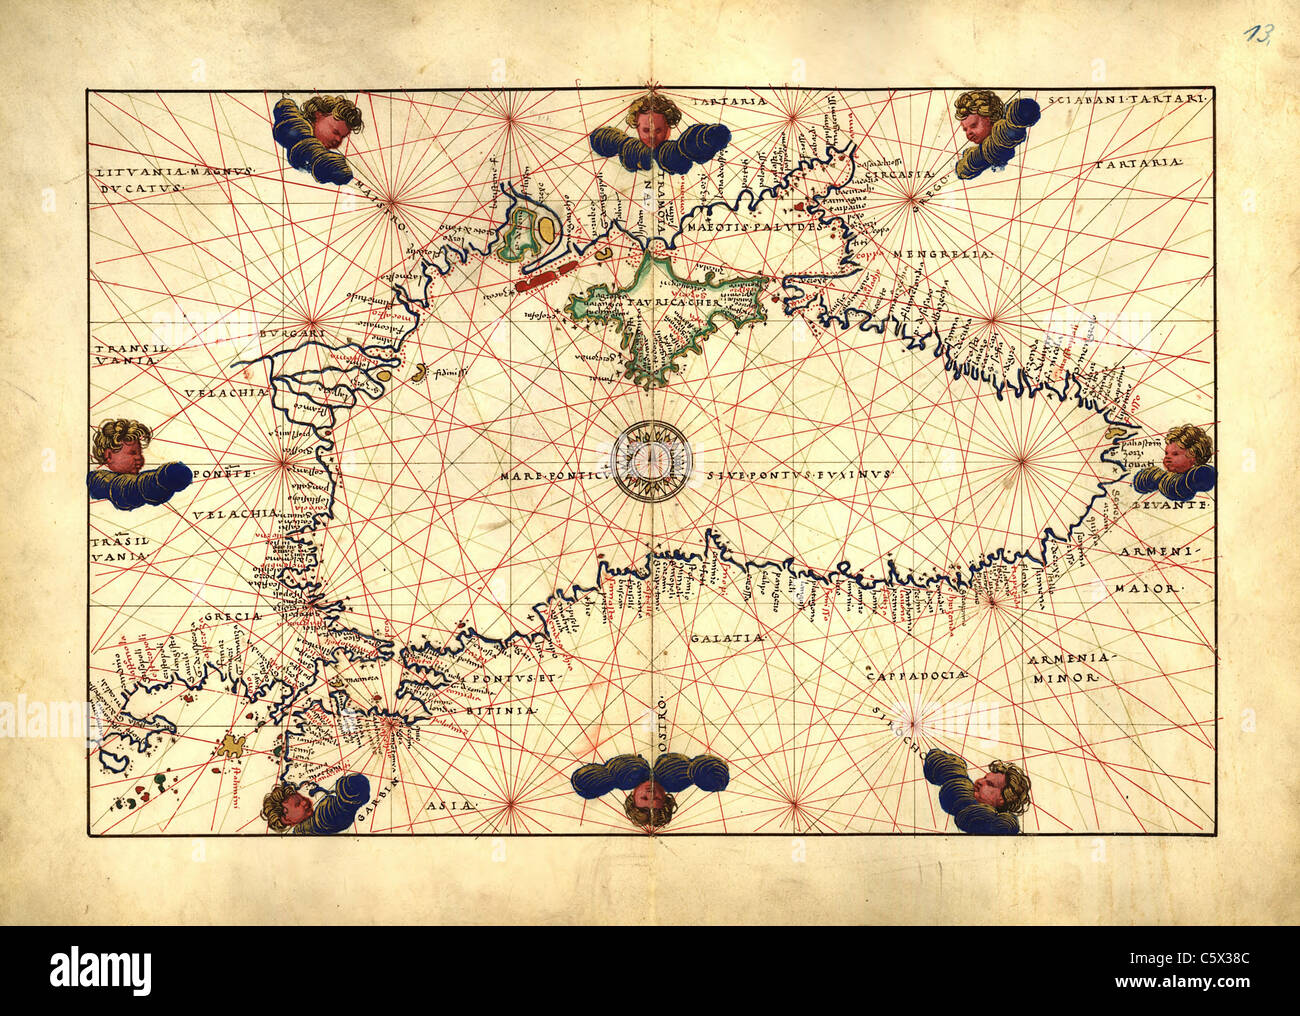 Black Sea - Antiquarian Map or Portolan Chart from 16th Century Portolan Atlas Stock Photo